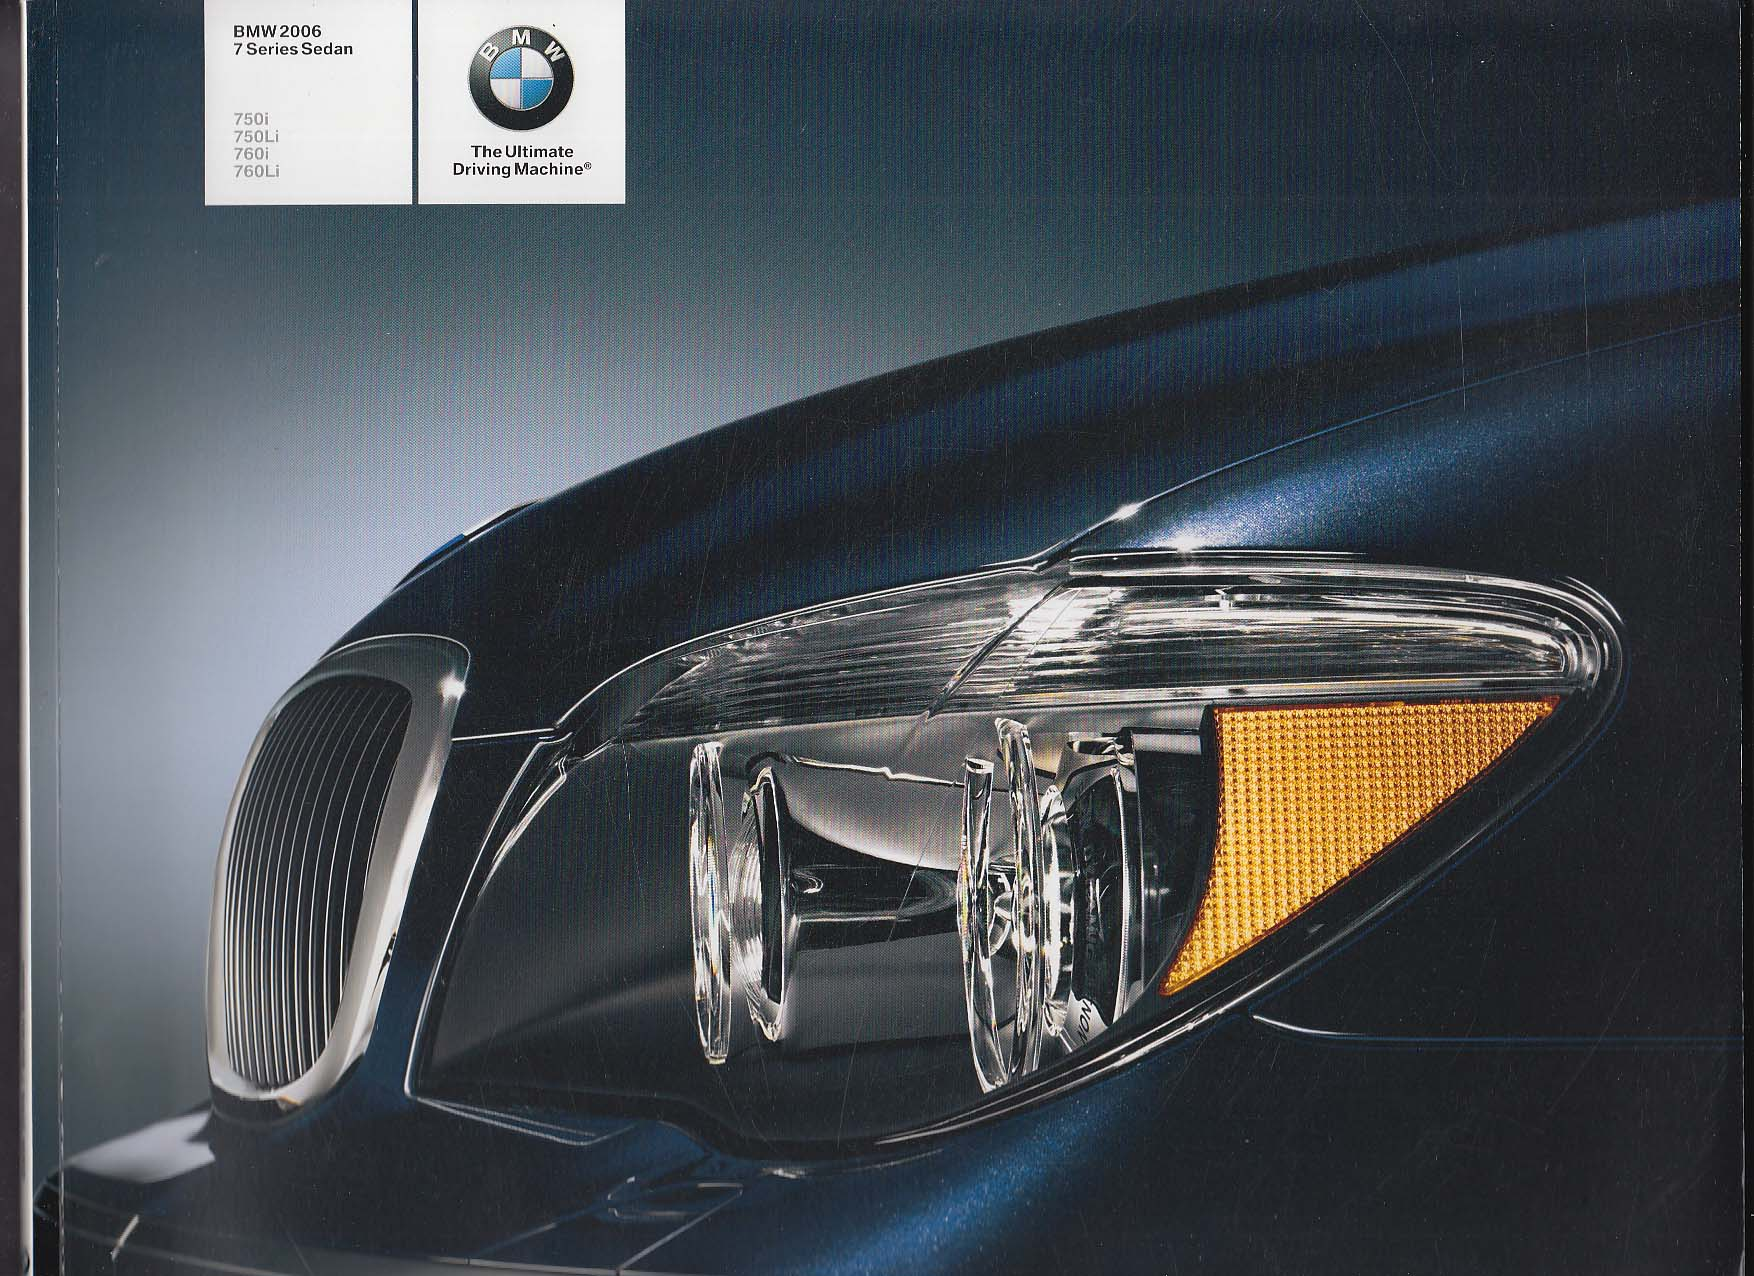 Image for 2006 BMW 7 Series Sedan sales brochure catalog 750i 750Li 760i 760Li